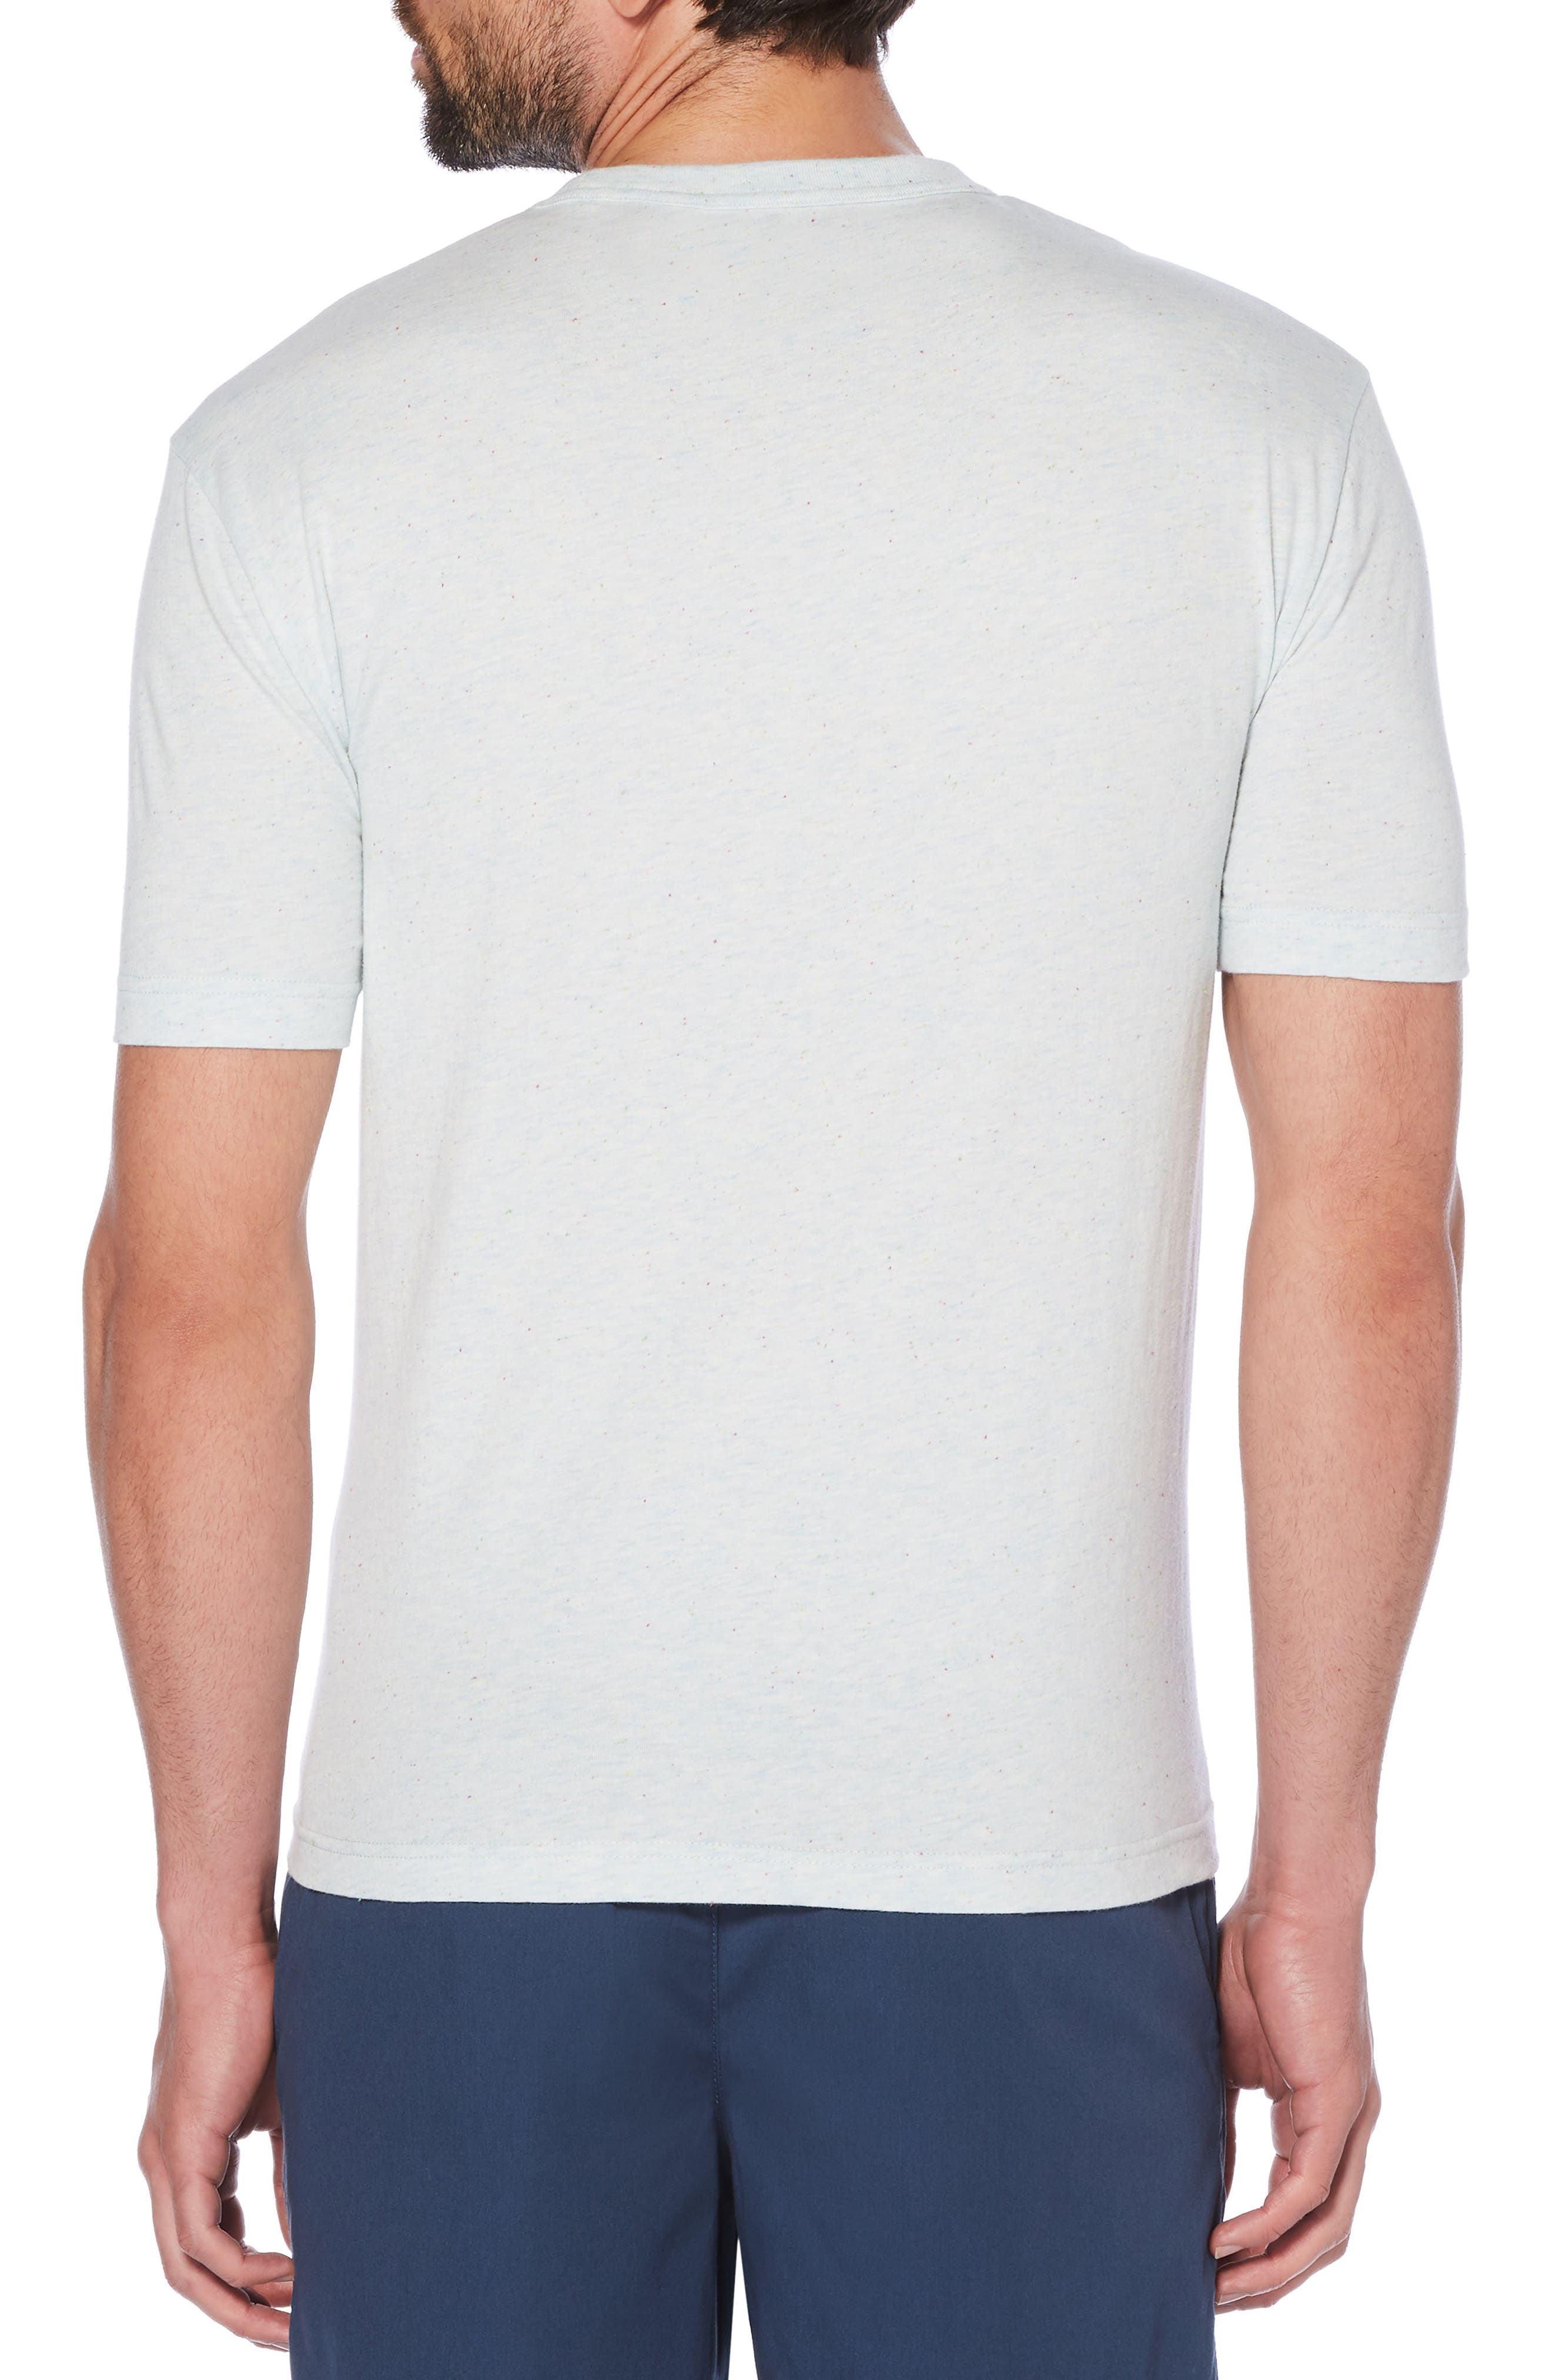 Good Vibes T-Shirt,                             Alternate thumbnail 2, color,                             Omphalodes